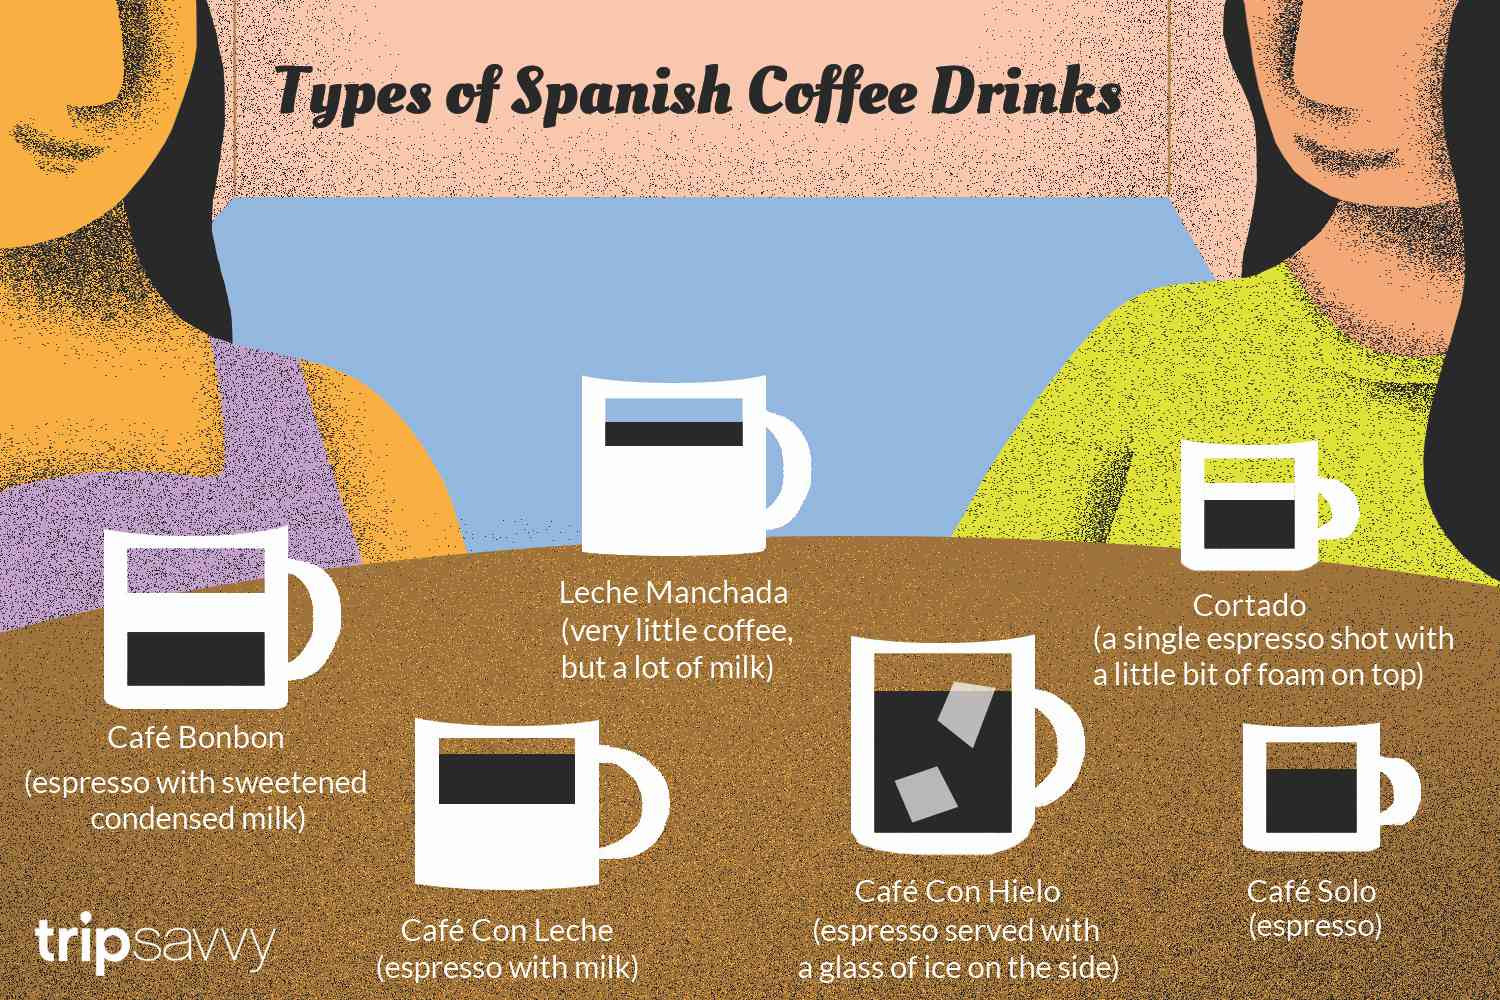 an illustration of 6 Types of Spanish Coffee Drinks